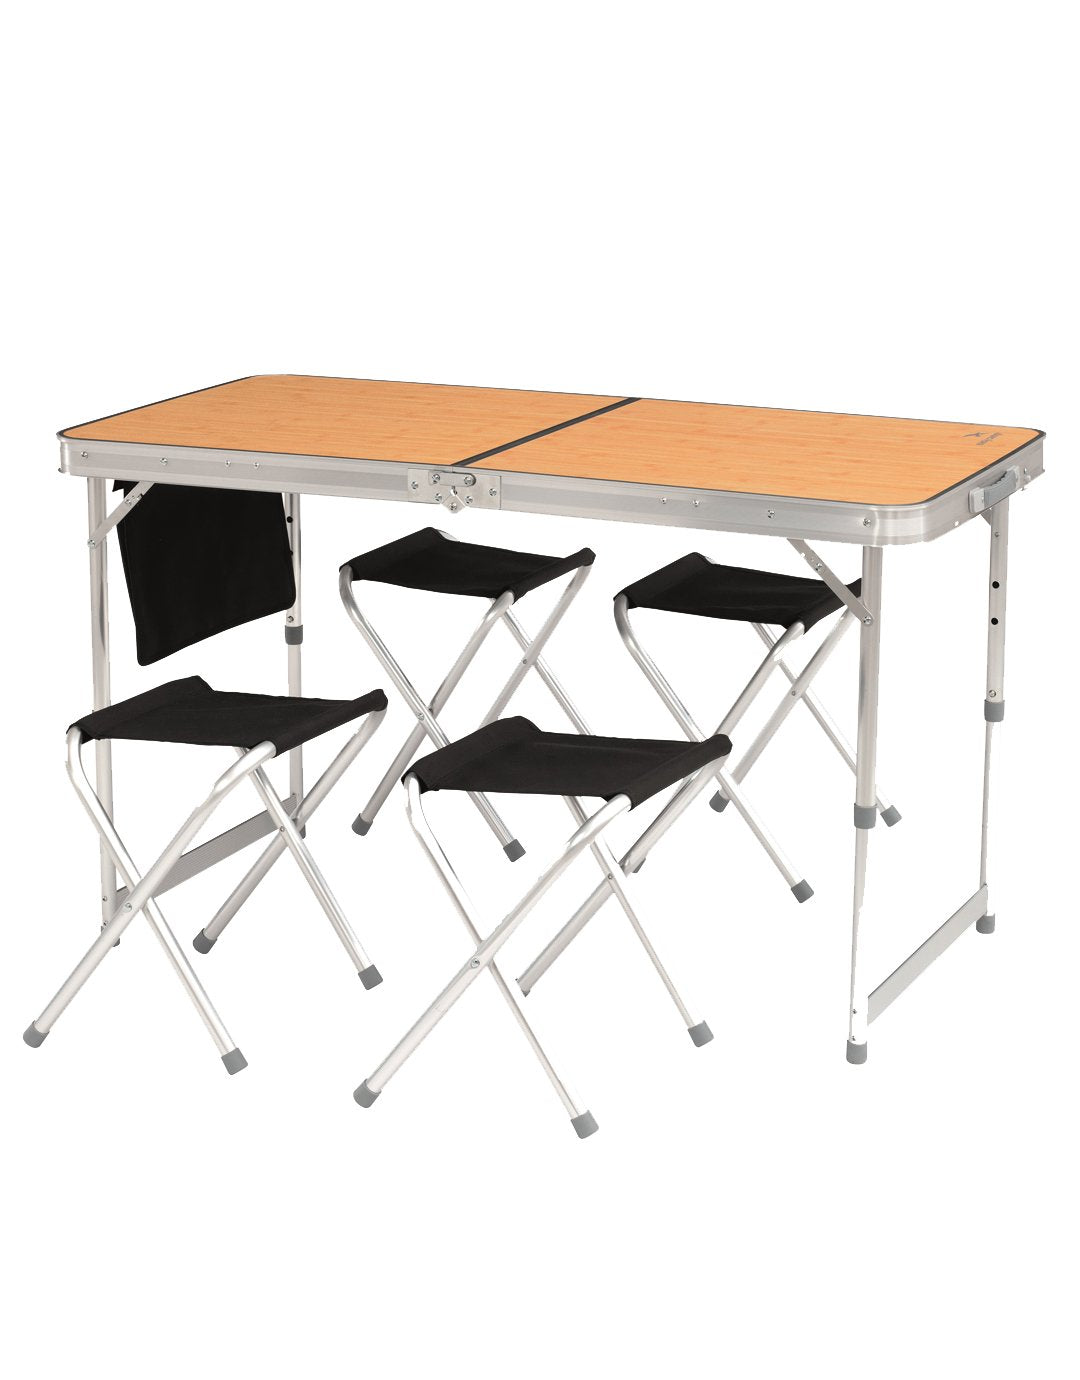 Image of Easy Camp Belfort Picnic Table